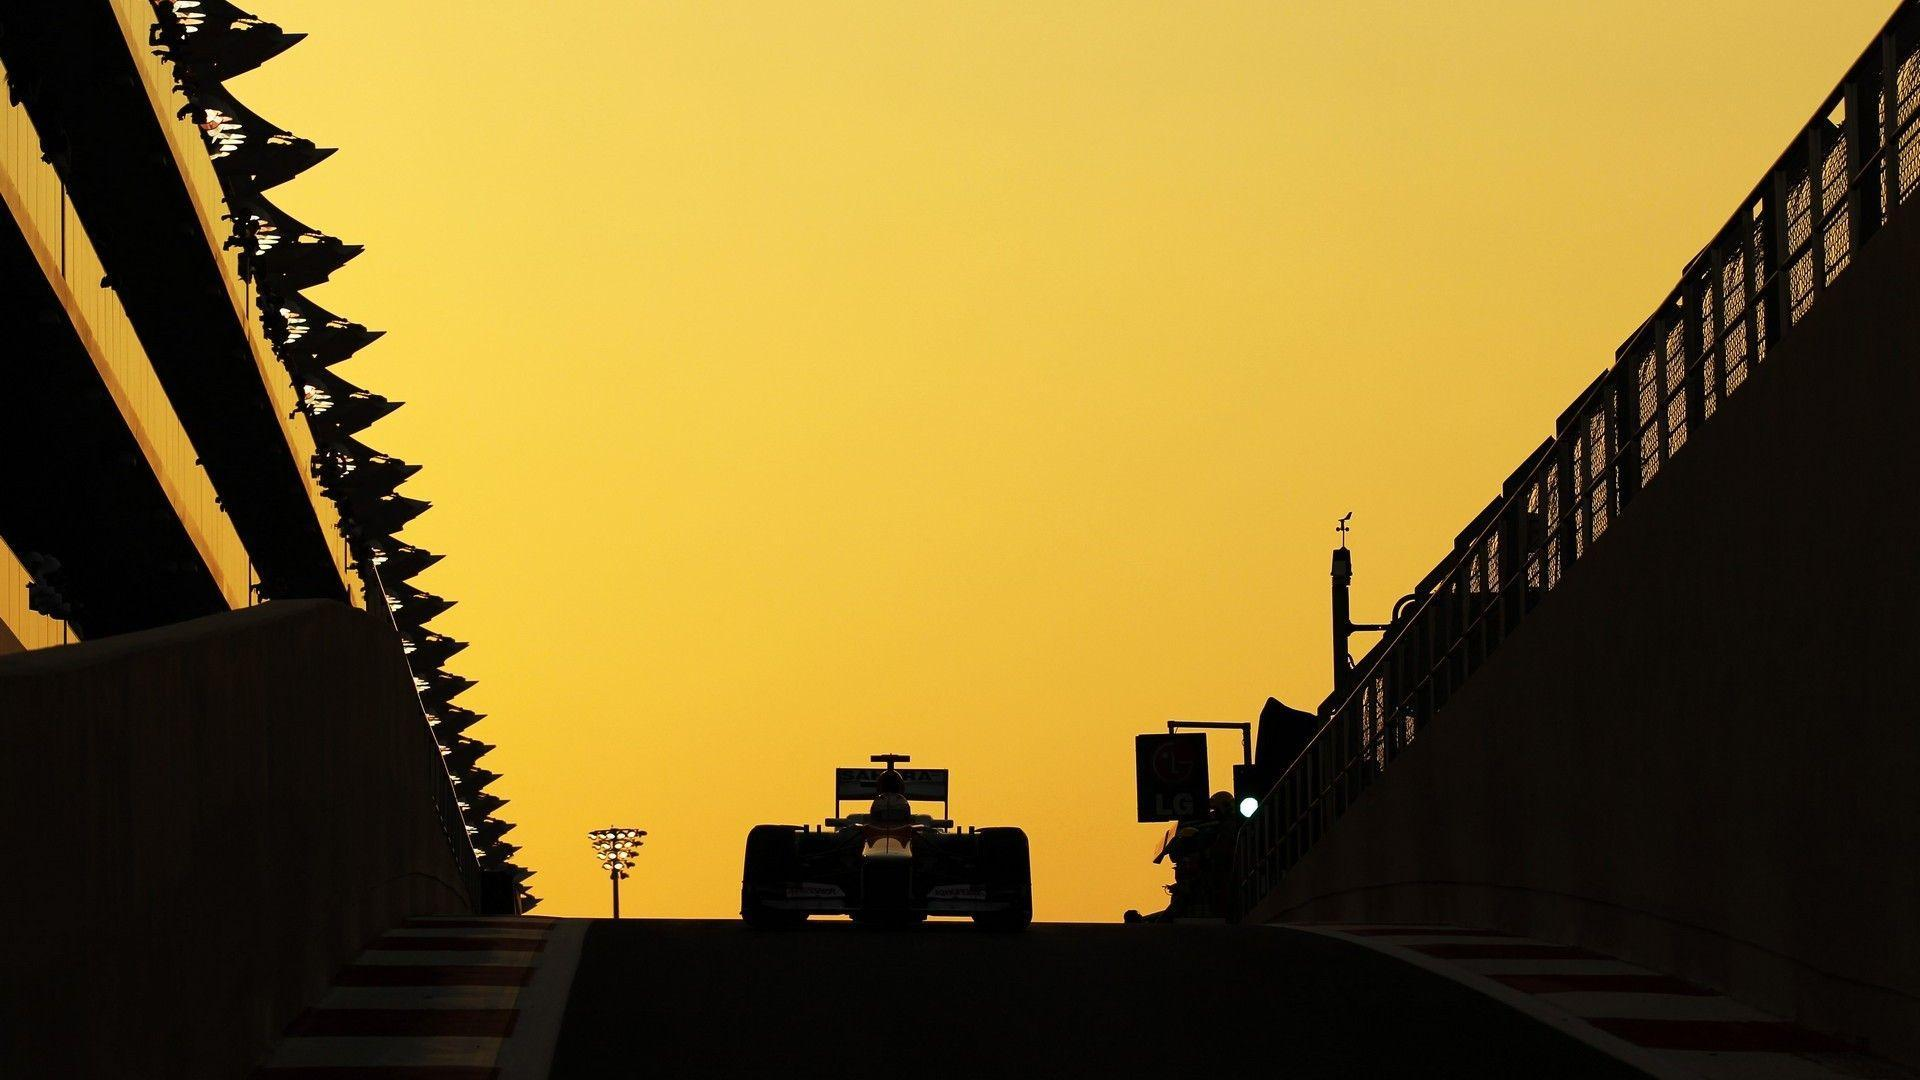 HD Wallpapers 2012 Formula 1 Grand Prix of Abu Dhabi